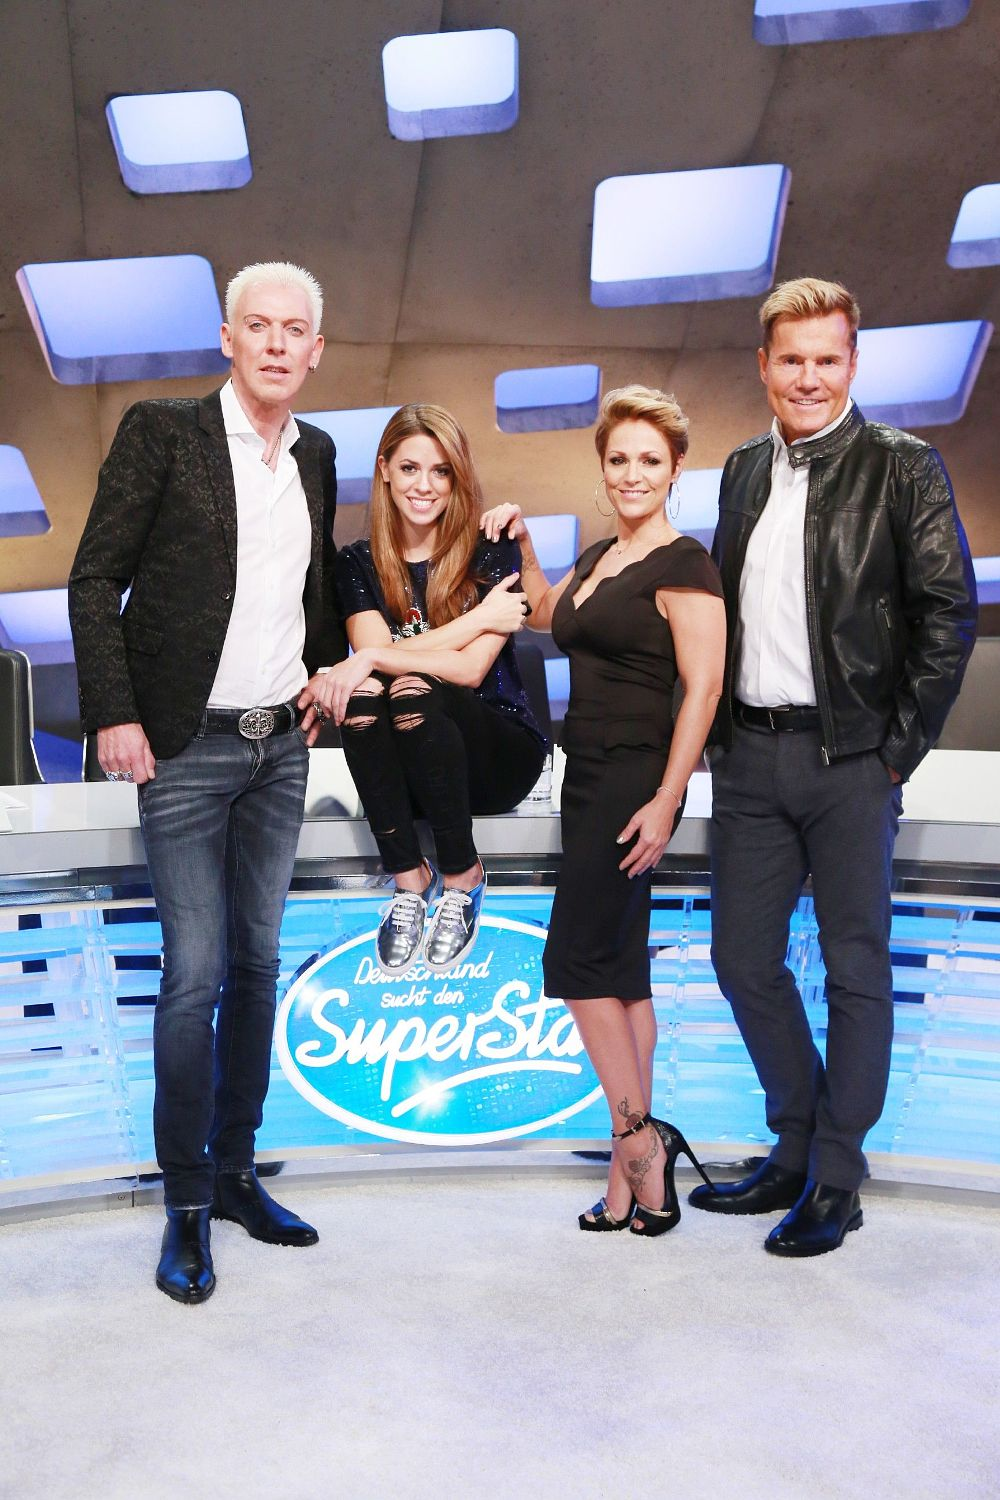 DSDS - Casting Spezial! - Telemagazyn.pl